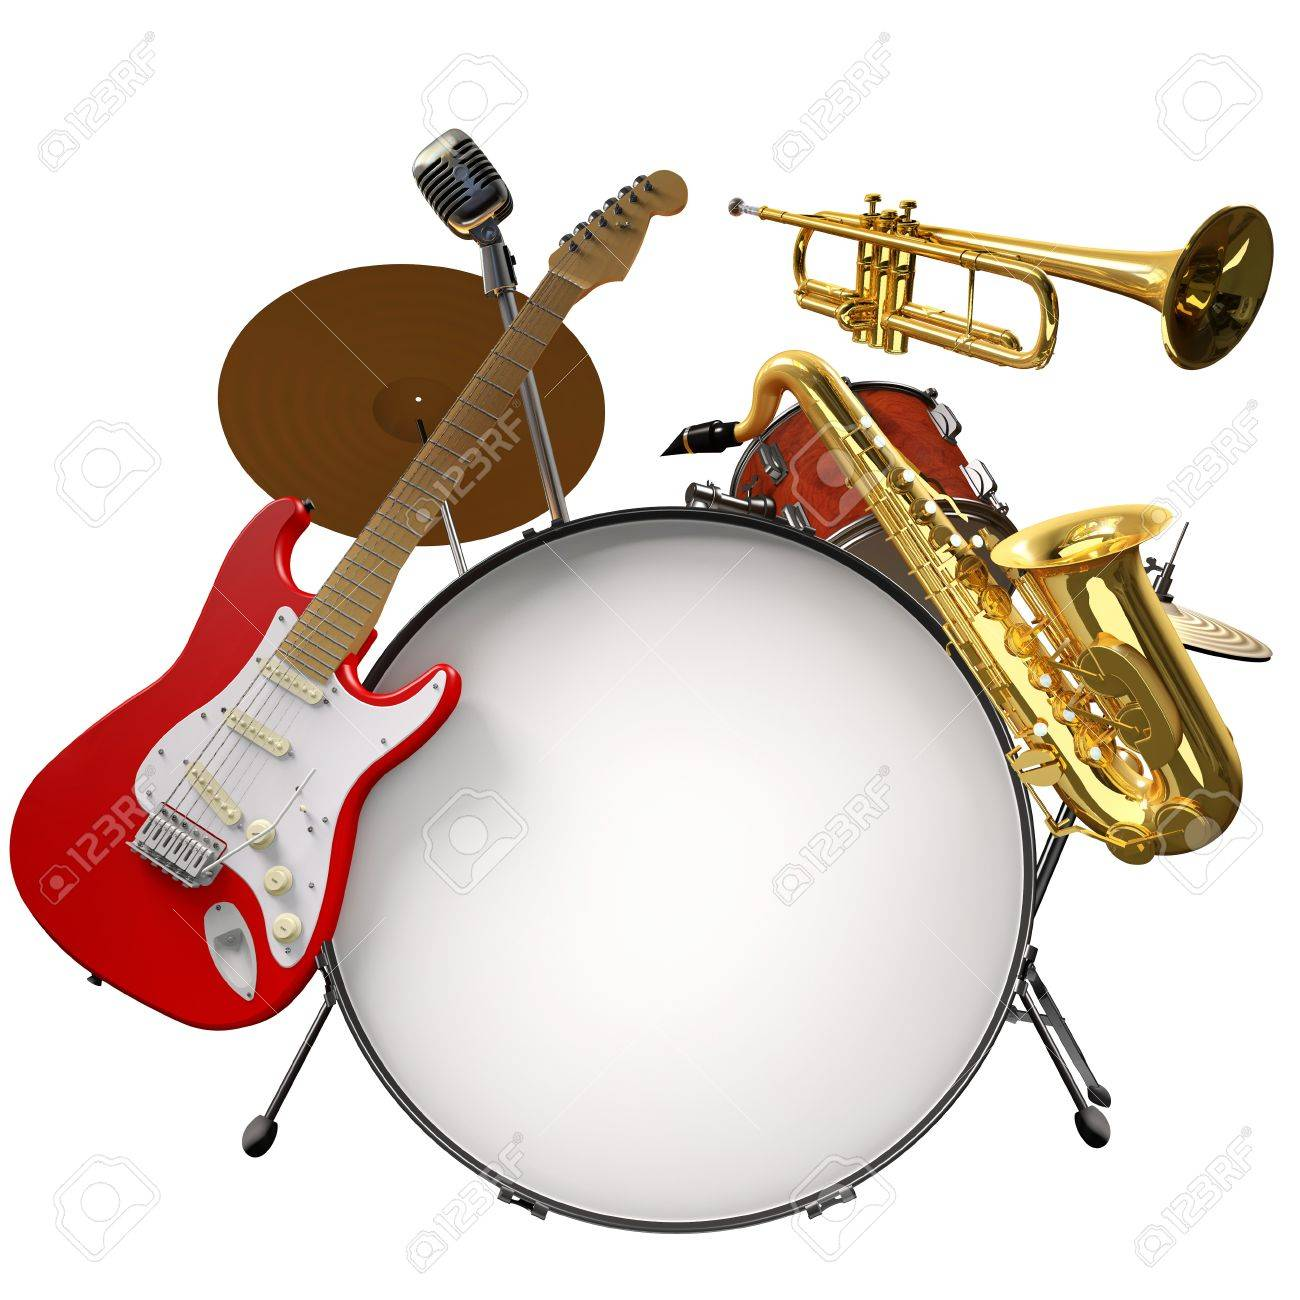 Jazz montage consisting of a drum kit, electic guitare, microphone, saxophone and trumpet on a white background Stock Photo - 16948120